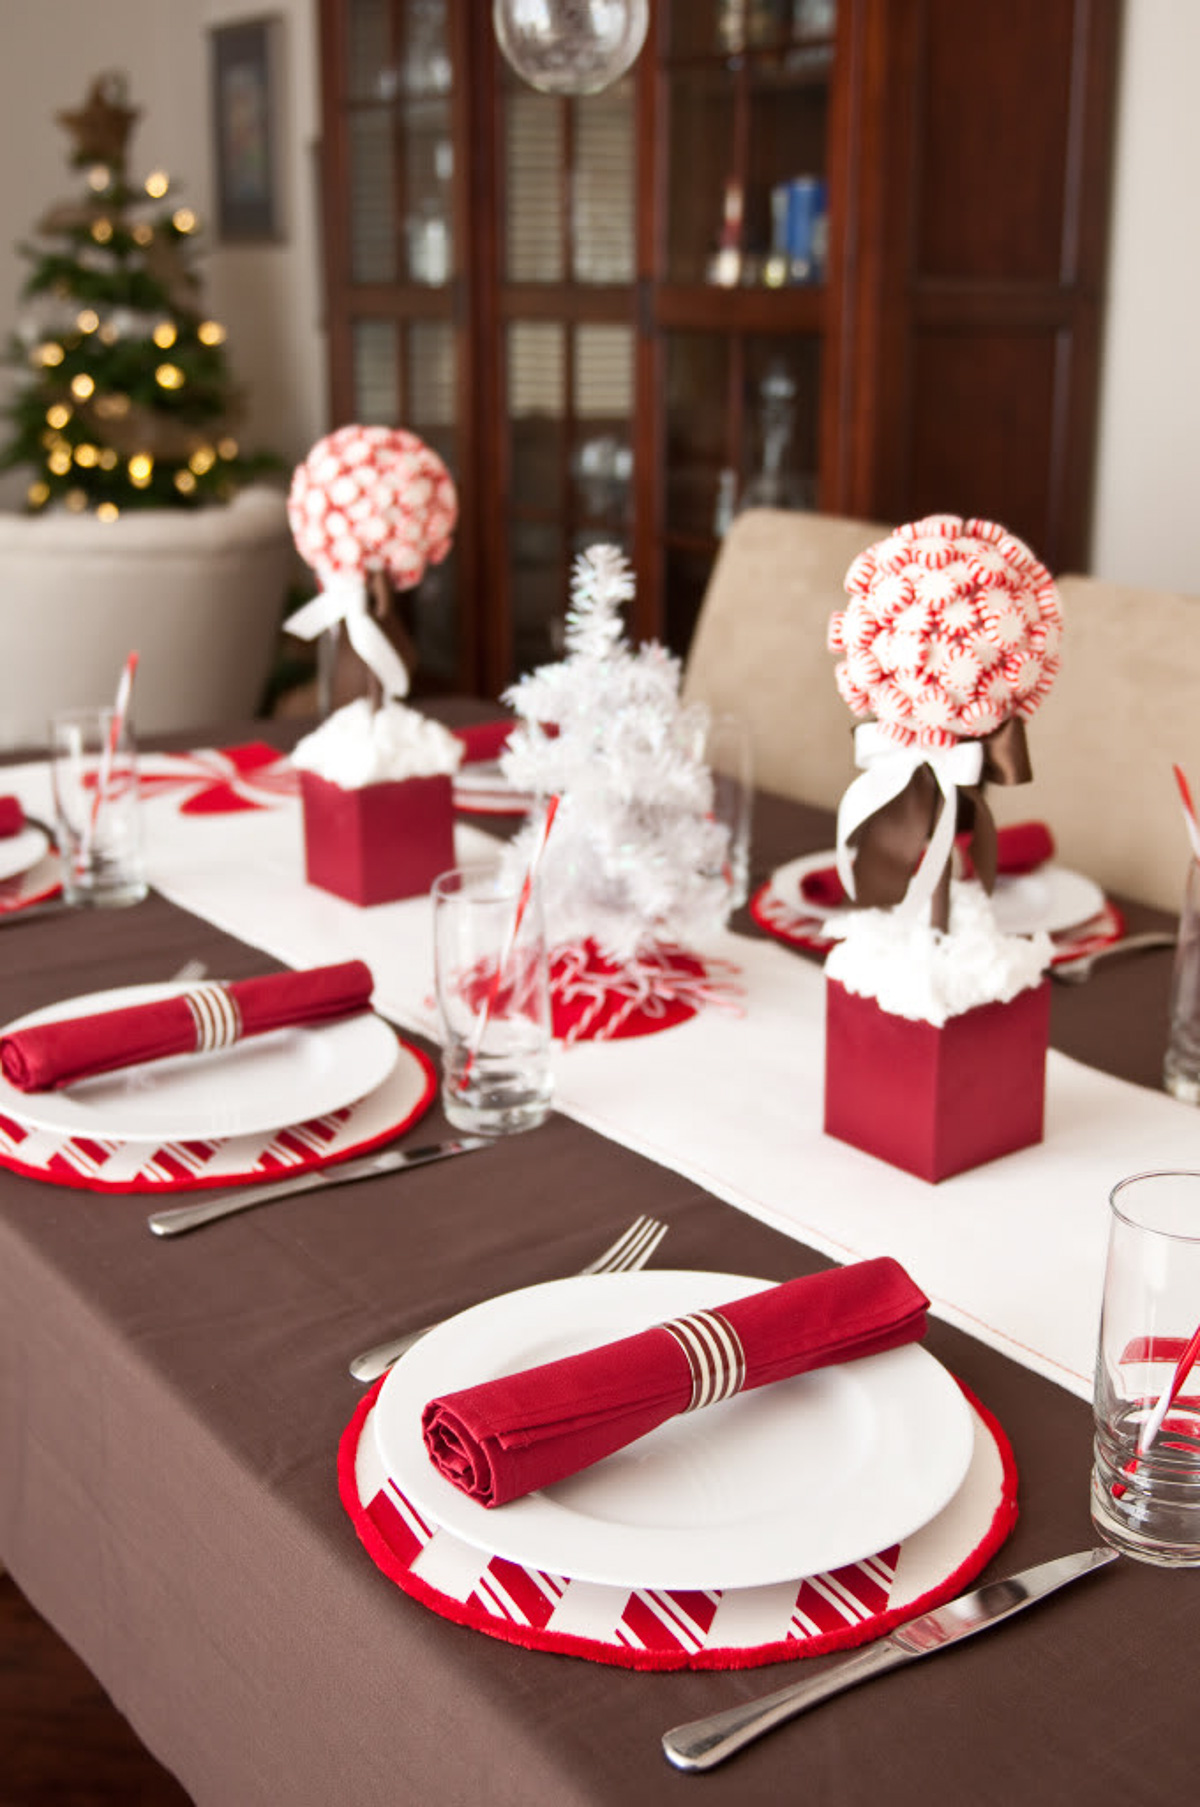 Diy christmas table decorations ideas - Cindy Lou Who Table Toppers